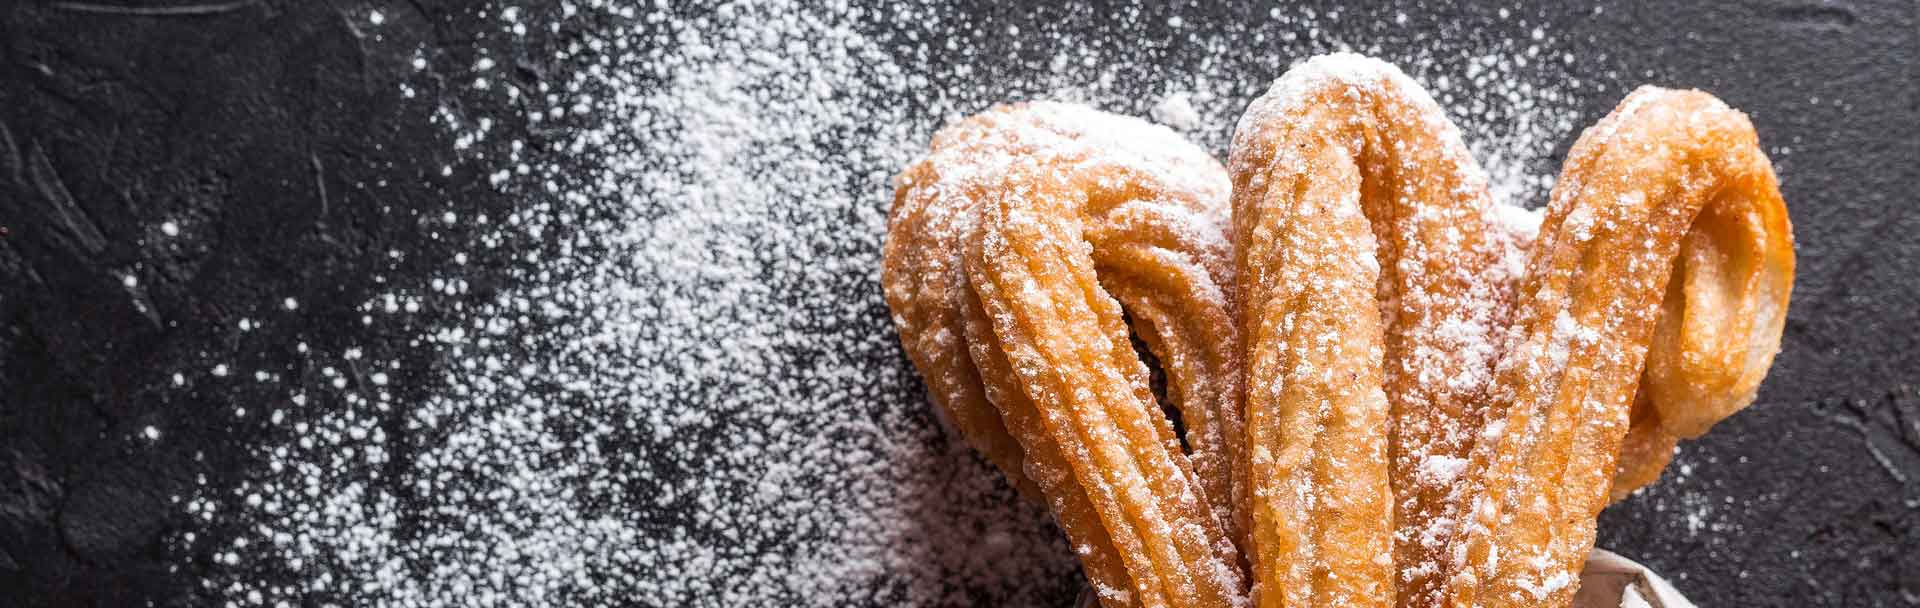 Authentic Spanish food : Delicious Churros with powder sugar